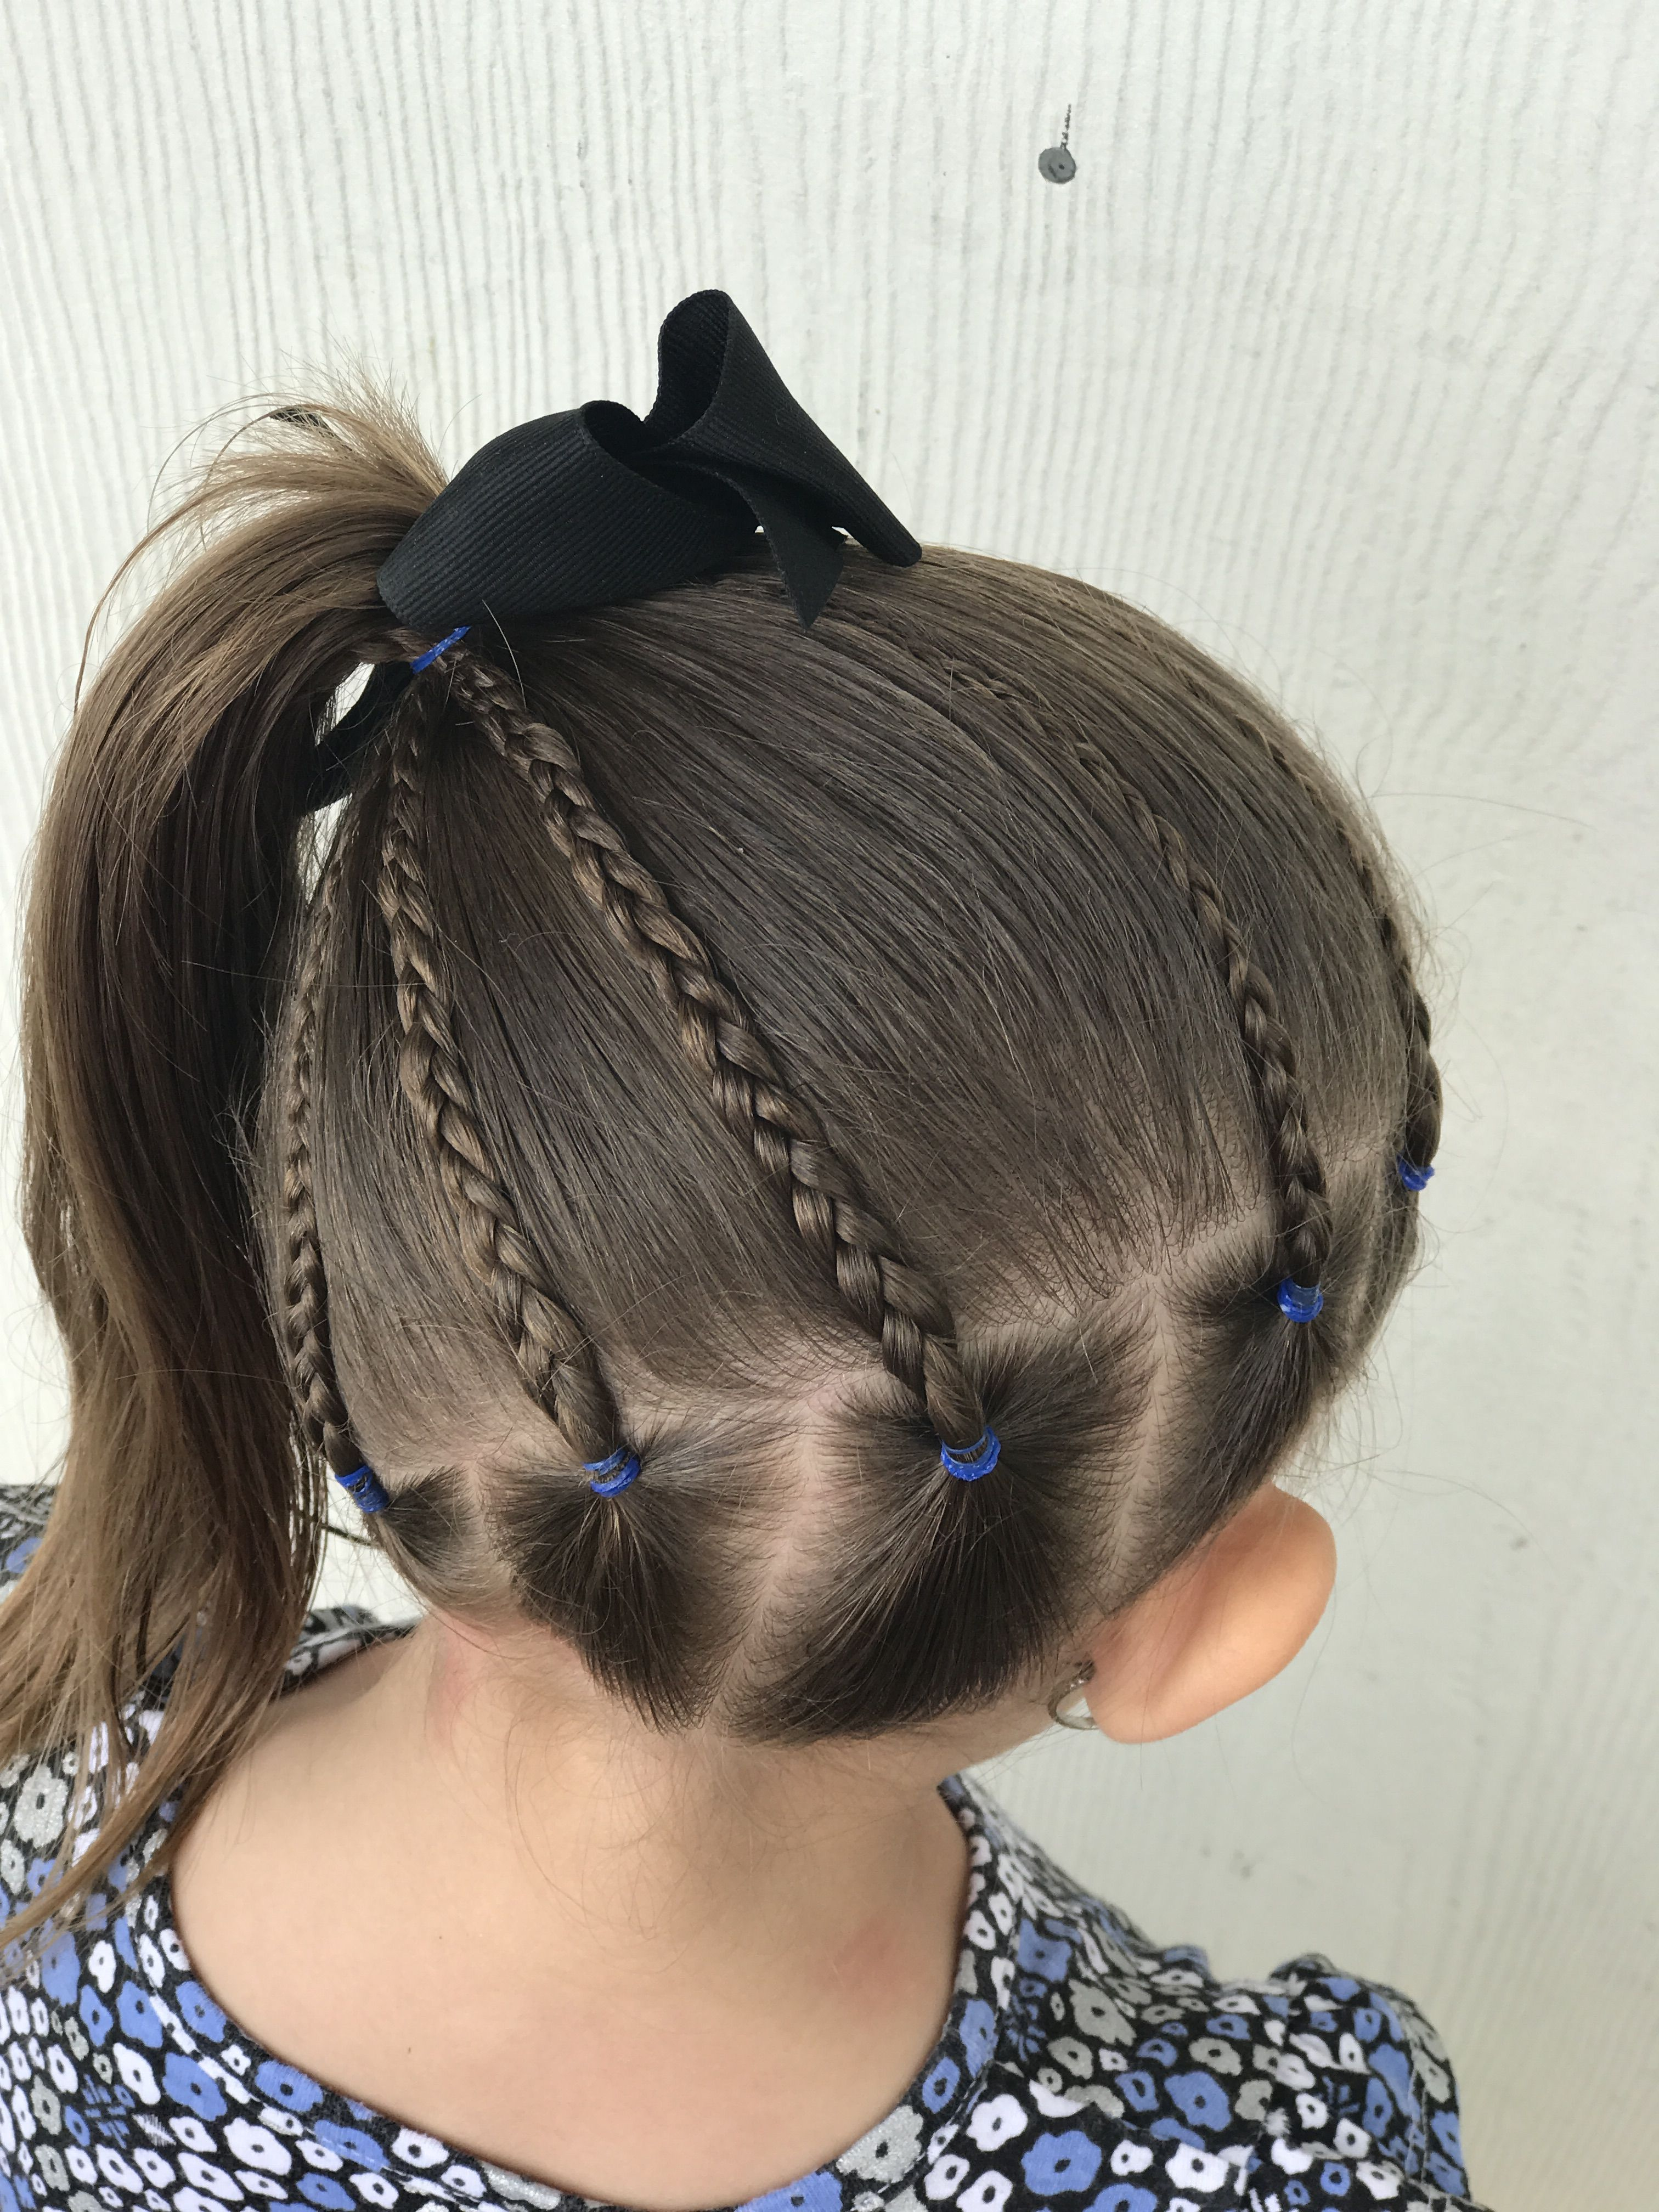 Cute hairstyles for little girls toddlers young ages